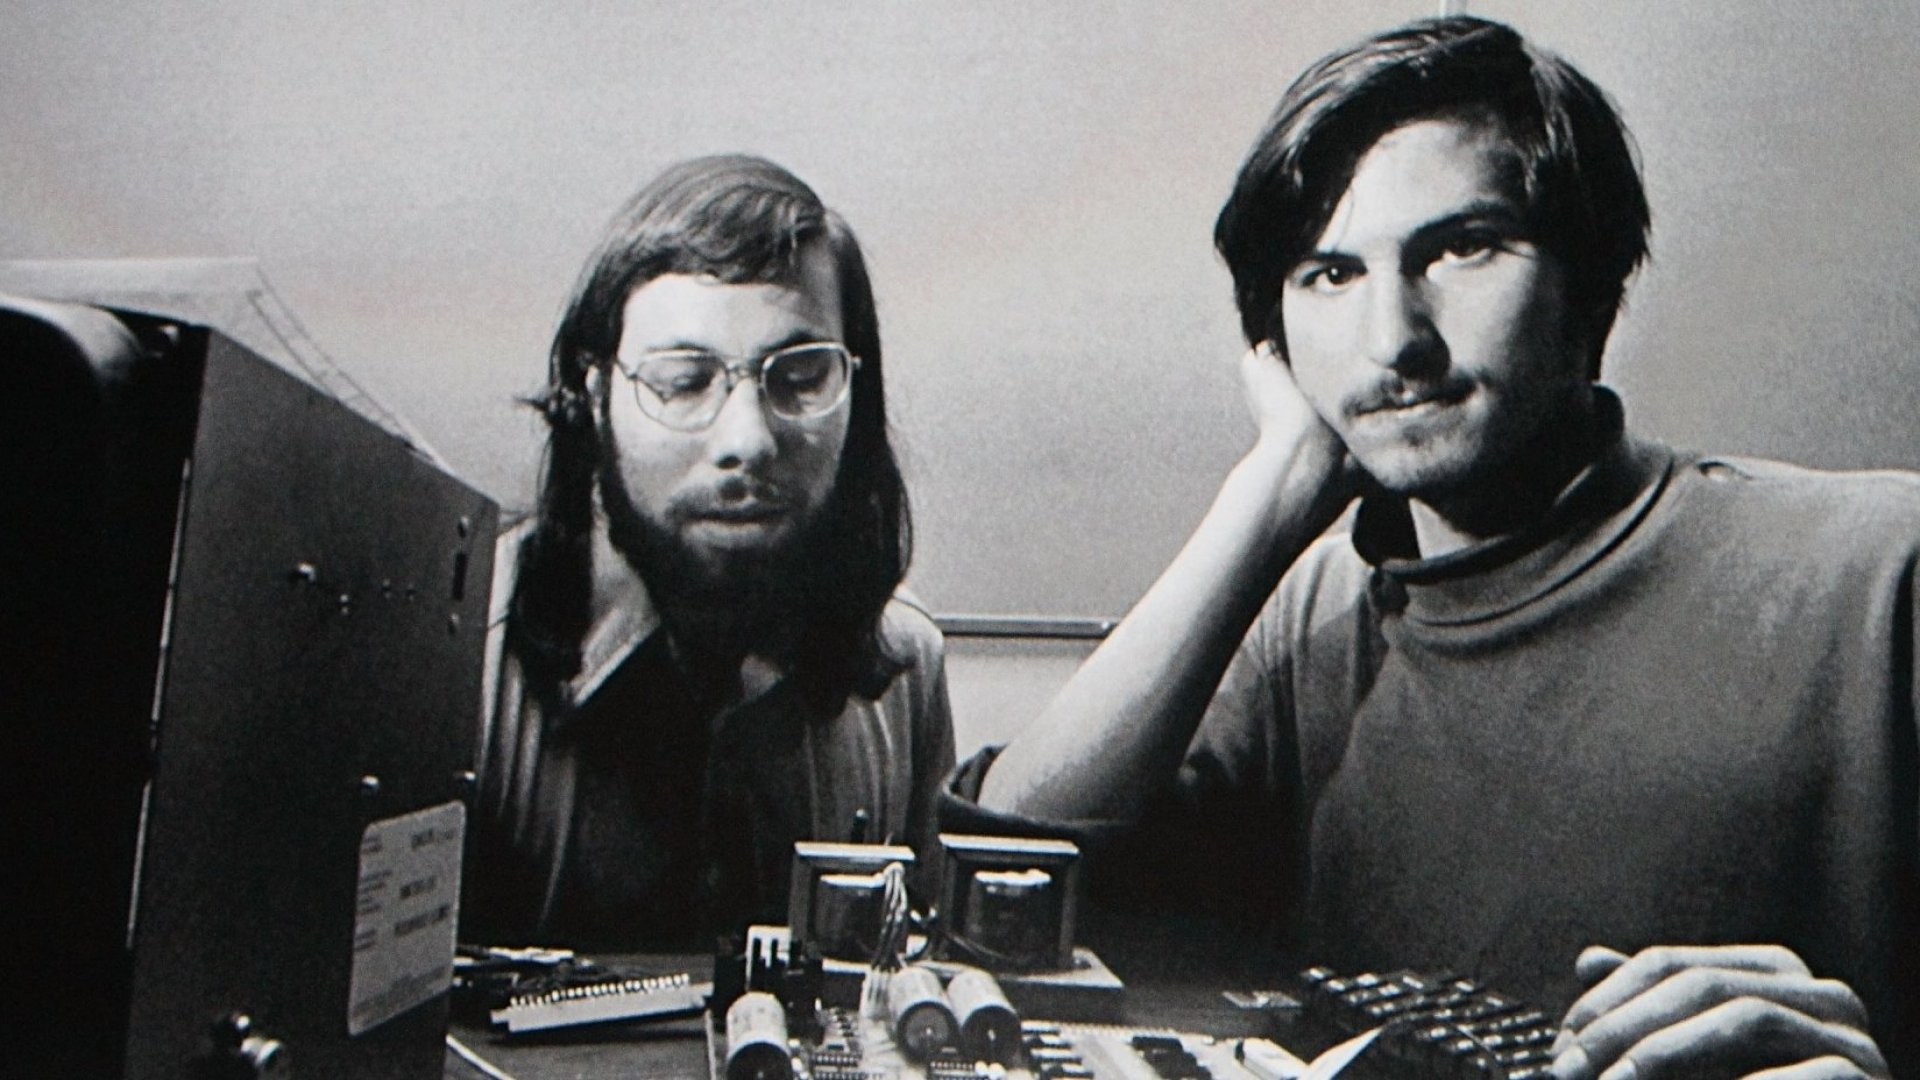 Steve Jobs, Bill Gates, and Jeff Bezos Made These 9 Tech Predictions Before the Year 2000 (and They All Came True)